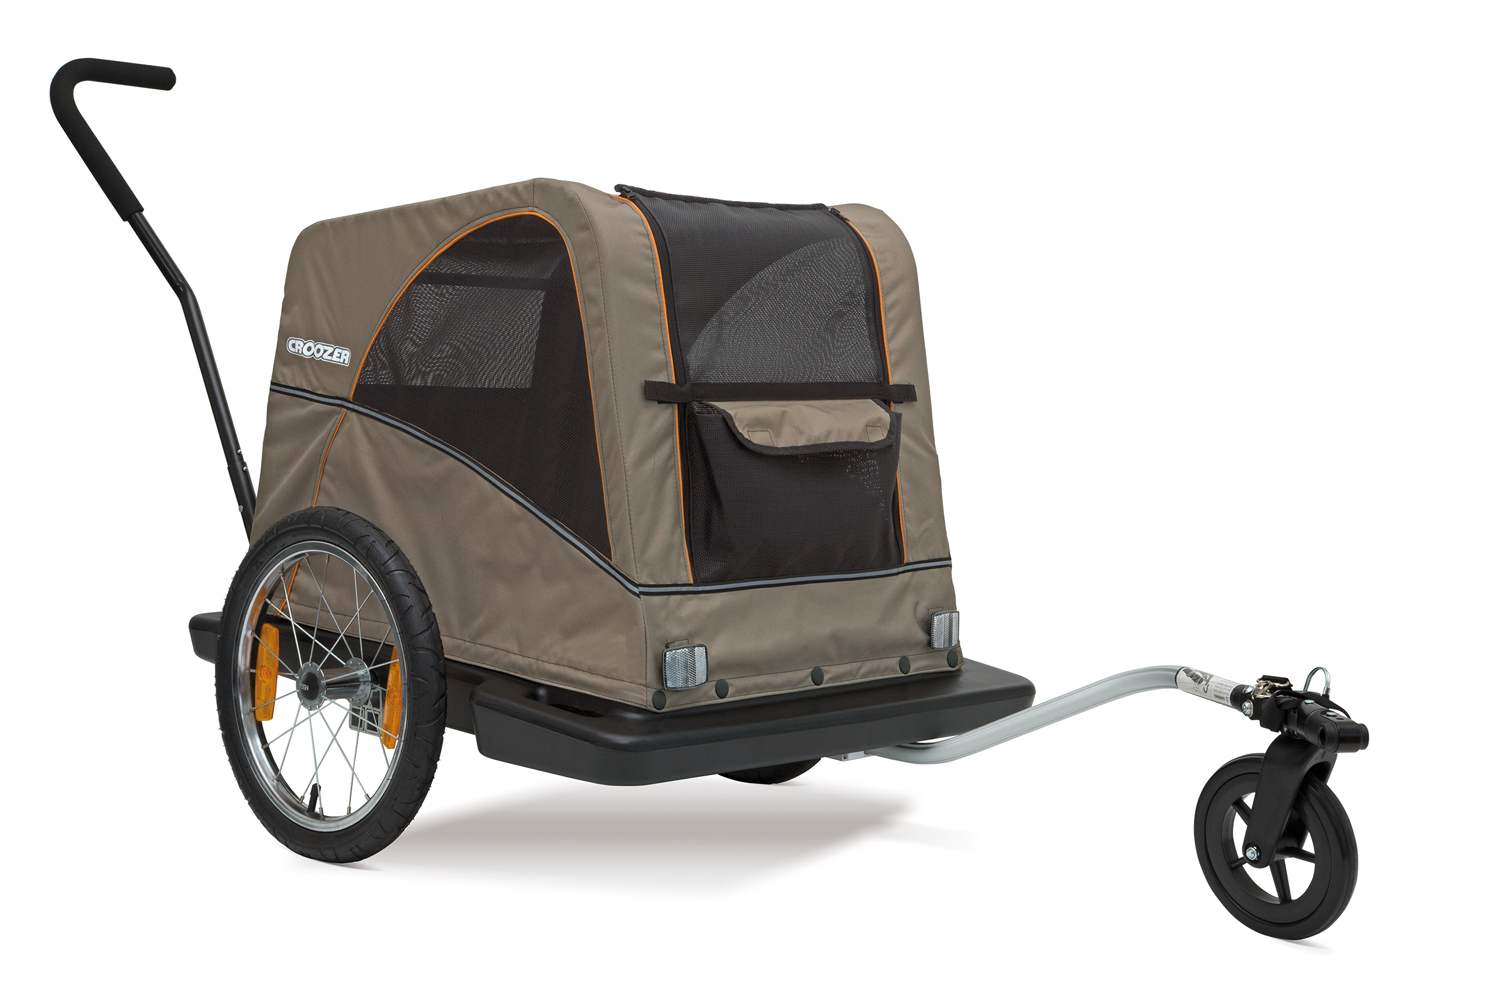 Croozer dog buggy trailer